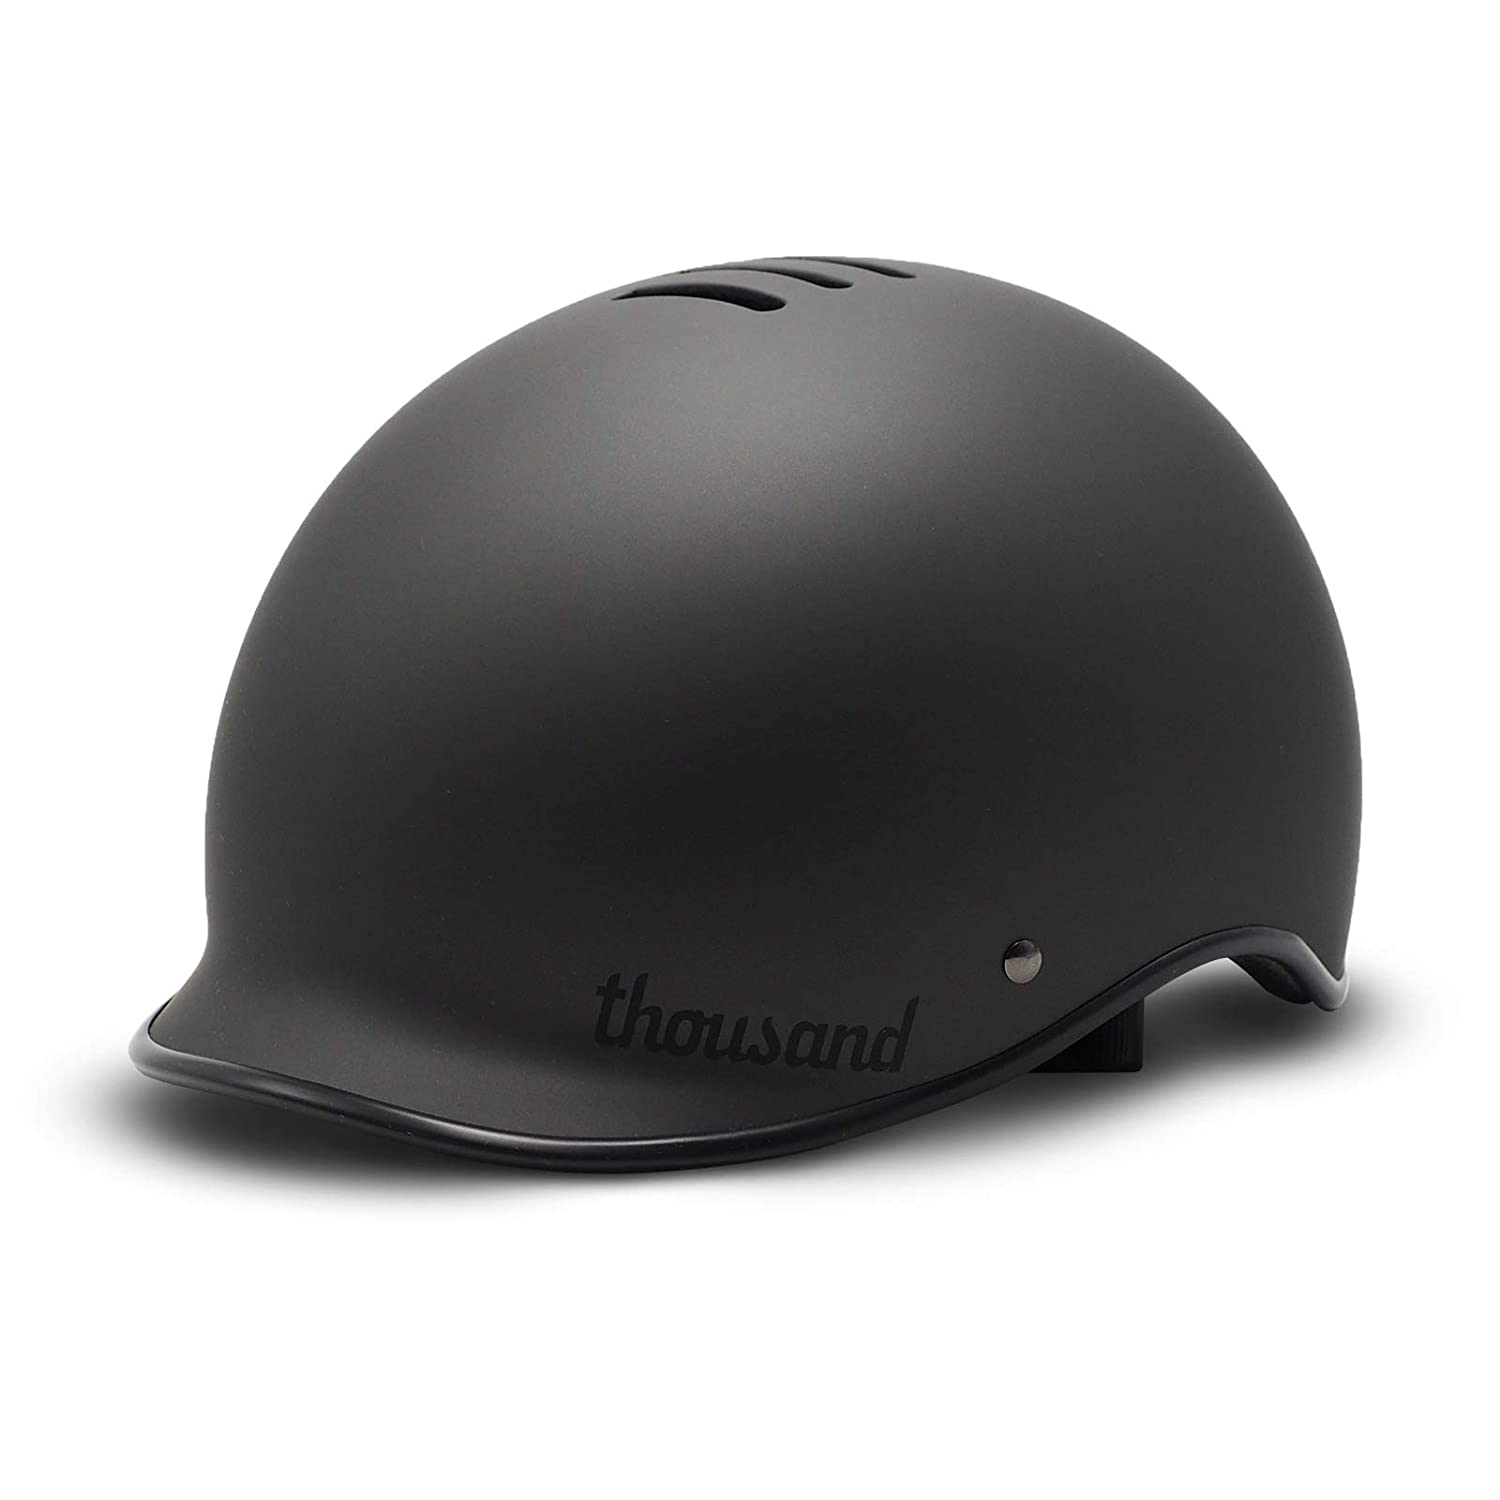 Thousand - Heritage Collection/Stealth Black With Adjuster S Size   B07RY8Z35P